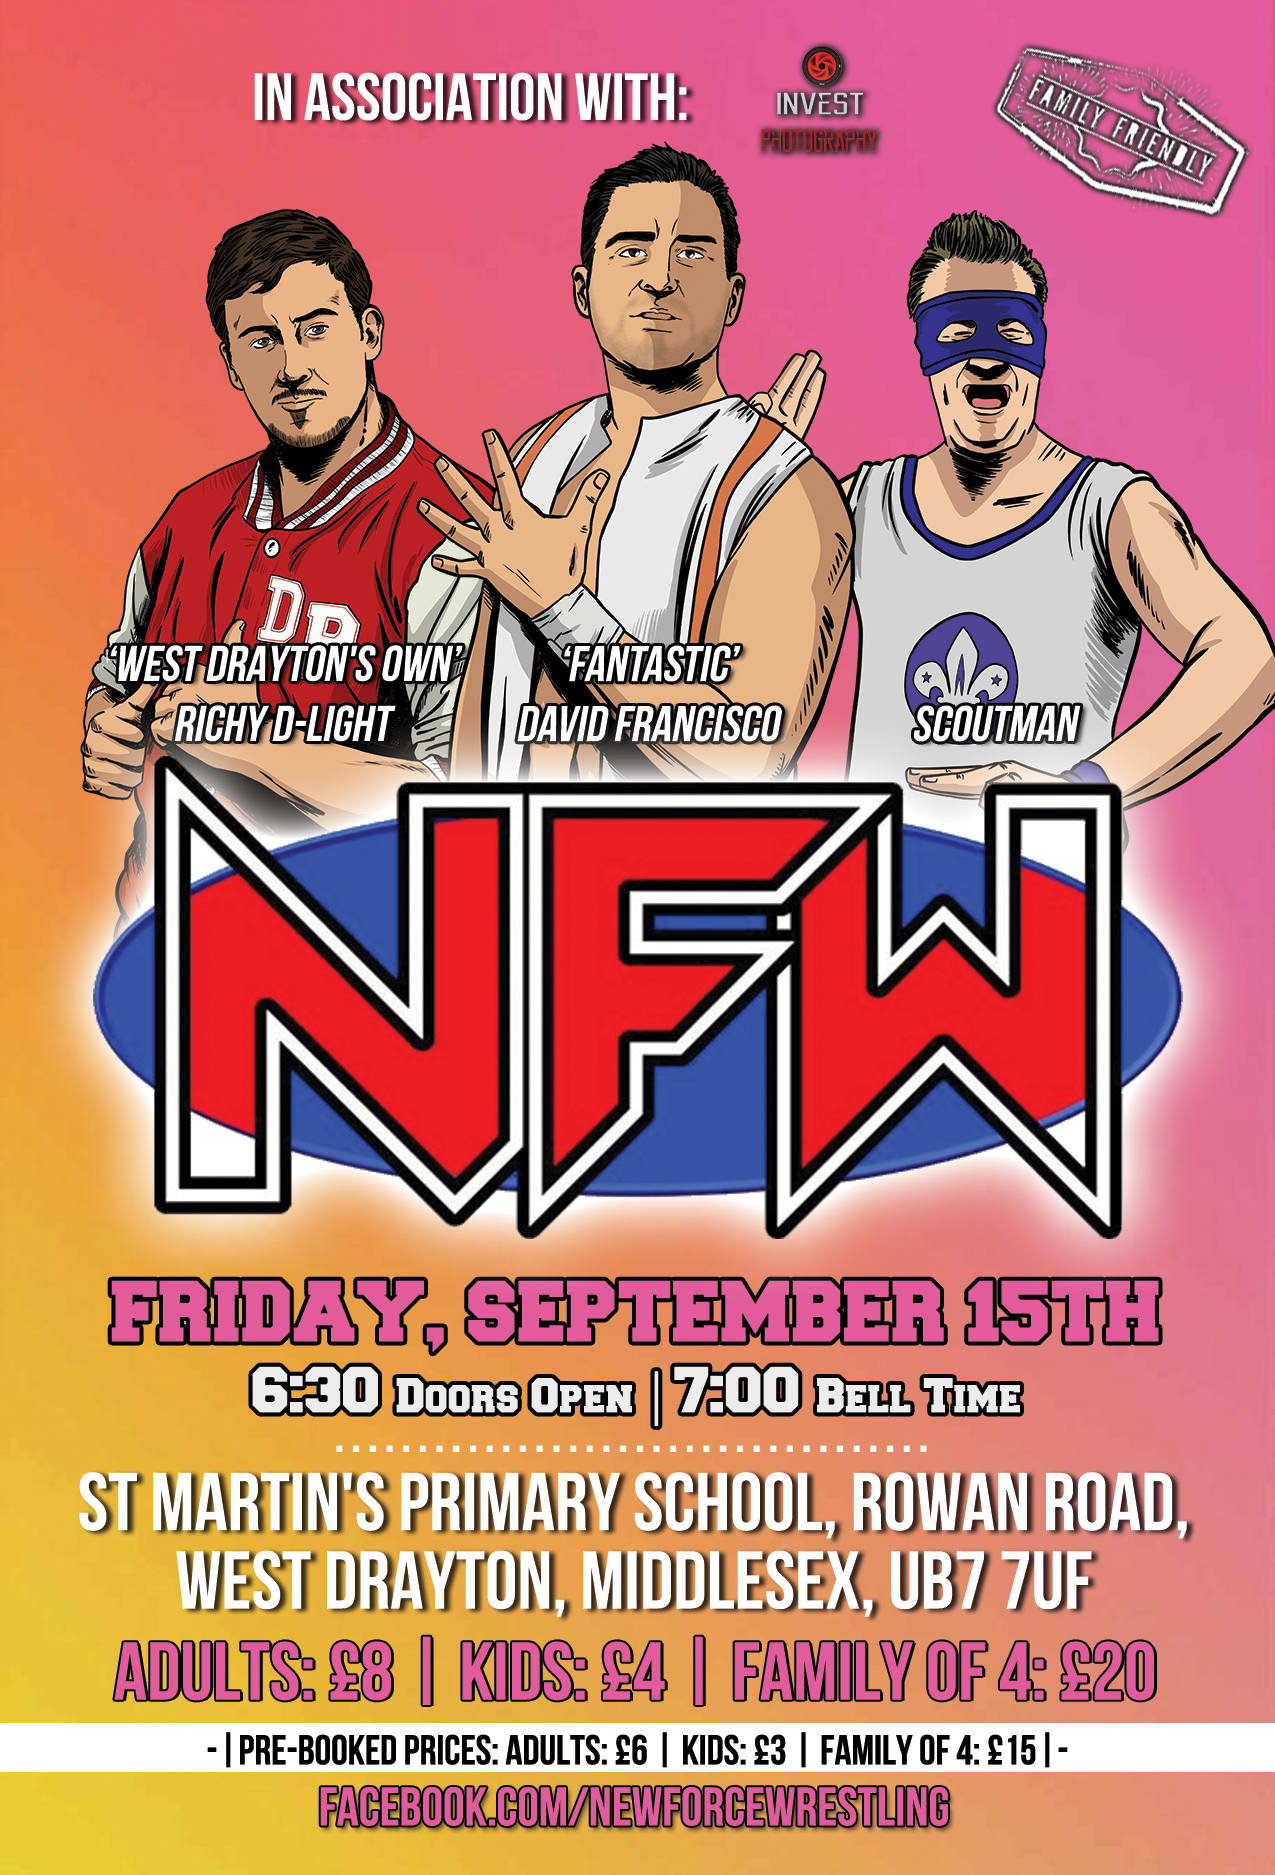 New Force Wrestling - West Drayton